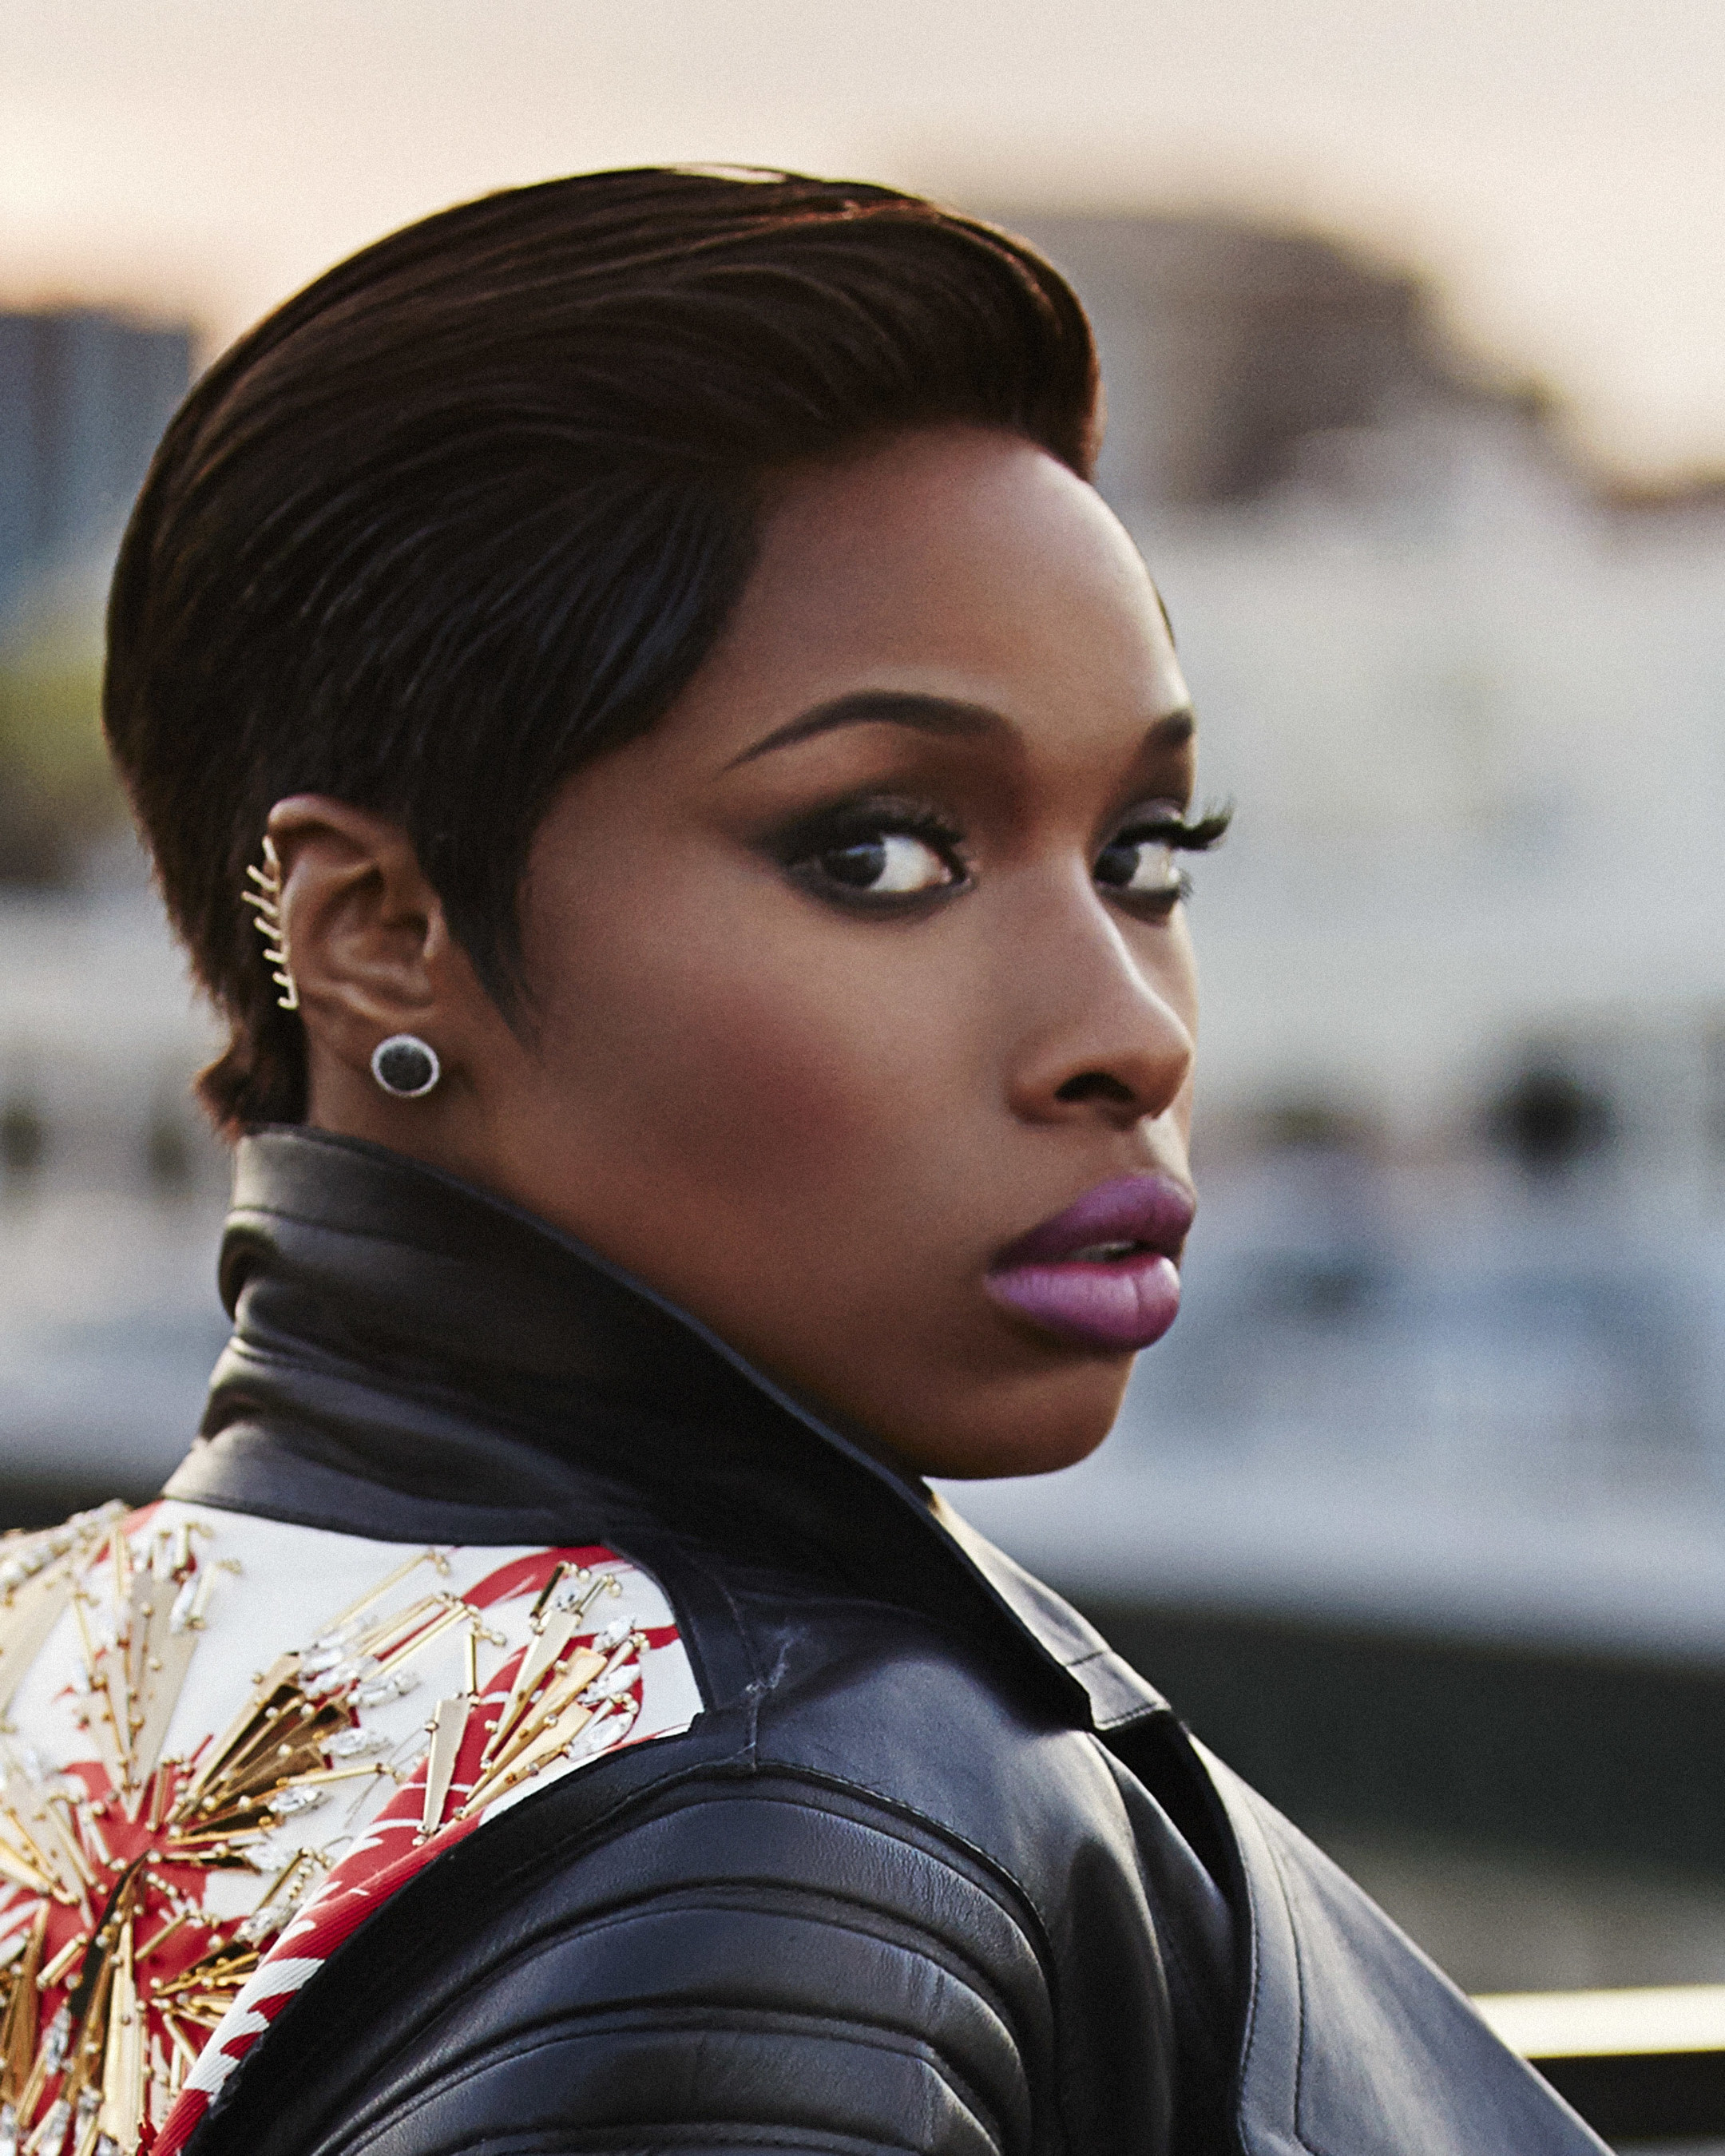 Art Van Furniture To Grand Open Chicago's Biggest Furniture Store At Showstopping Gala With Chicago's Biggest Star, Jennifer Hudson, On July 30!